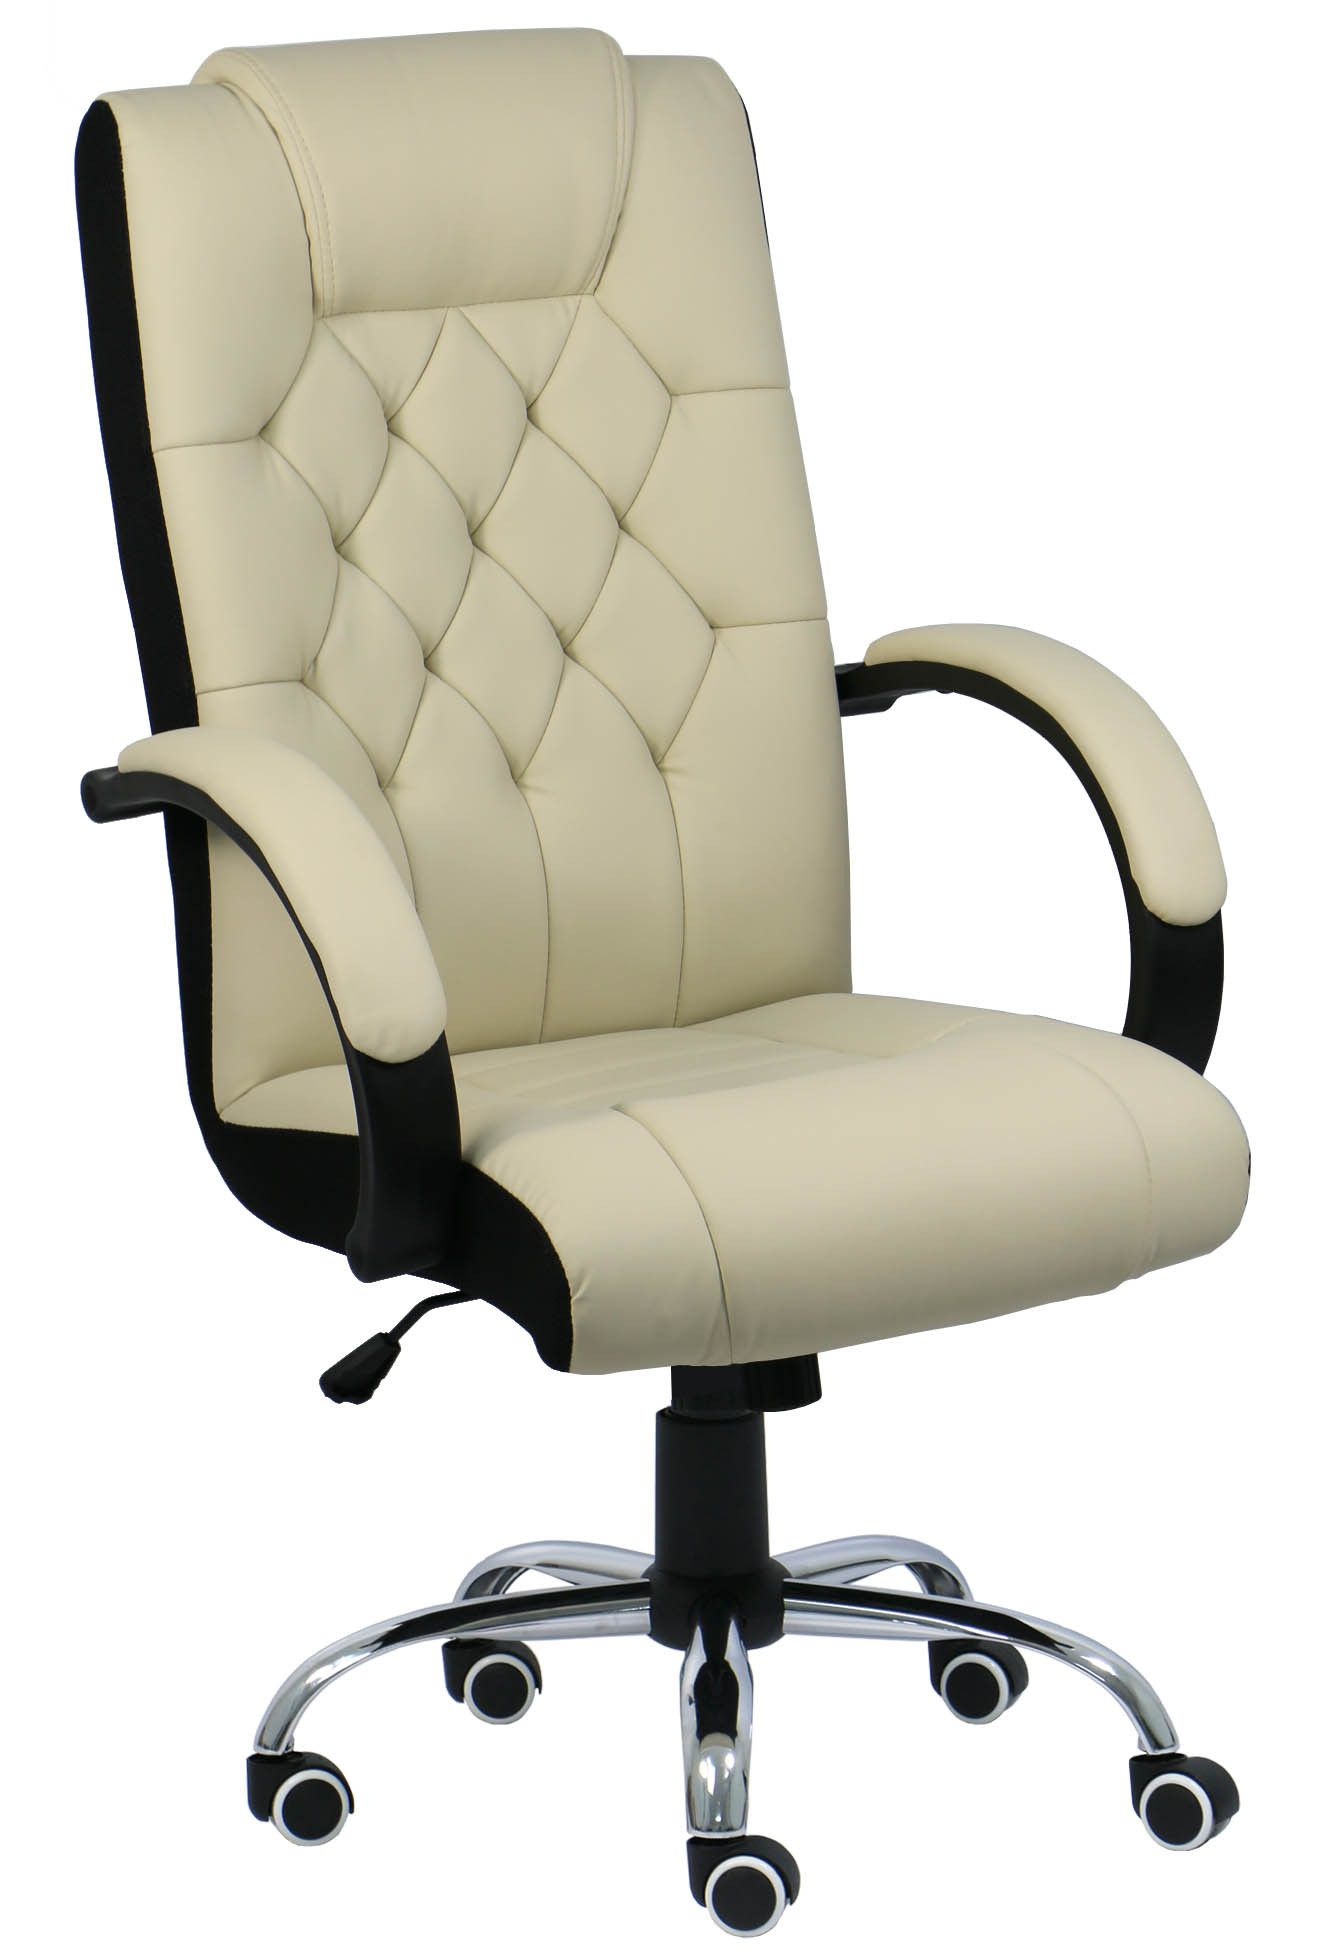 Rockford Executive Office Chair Beige Office Chairs Study